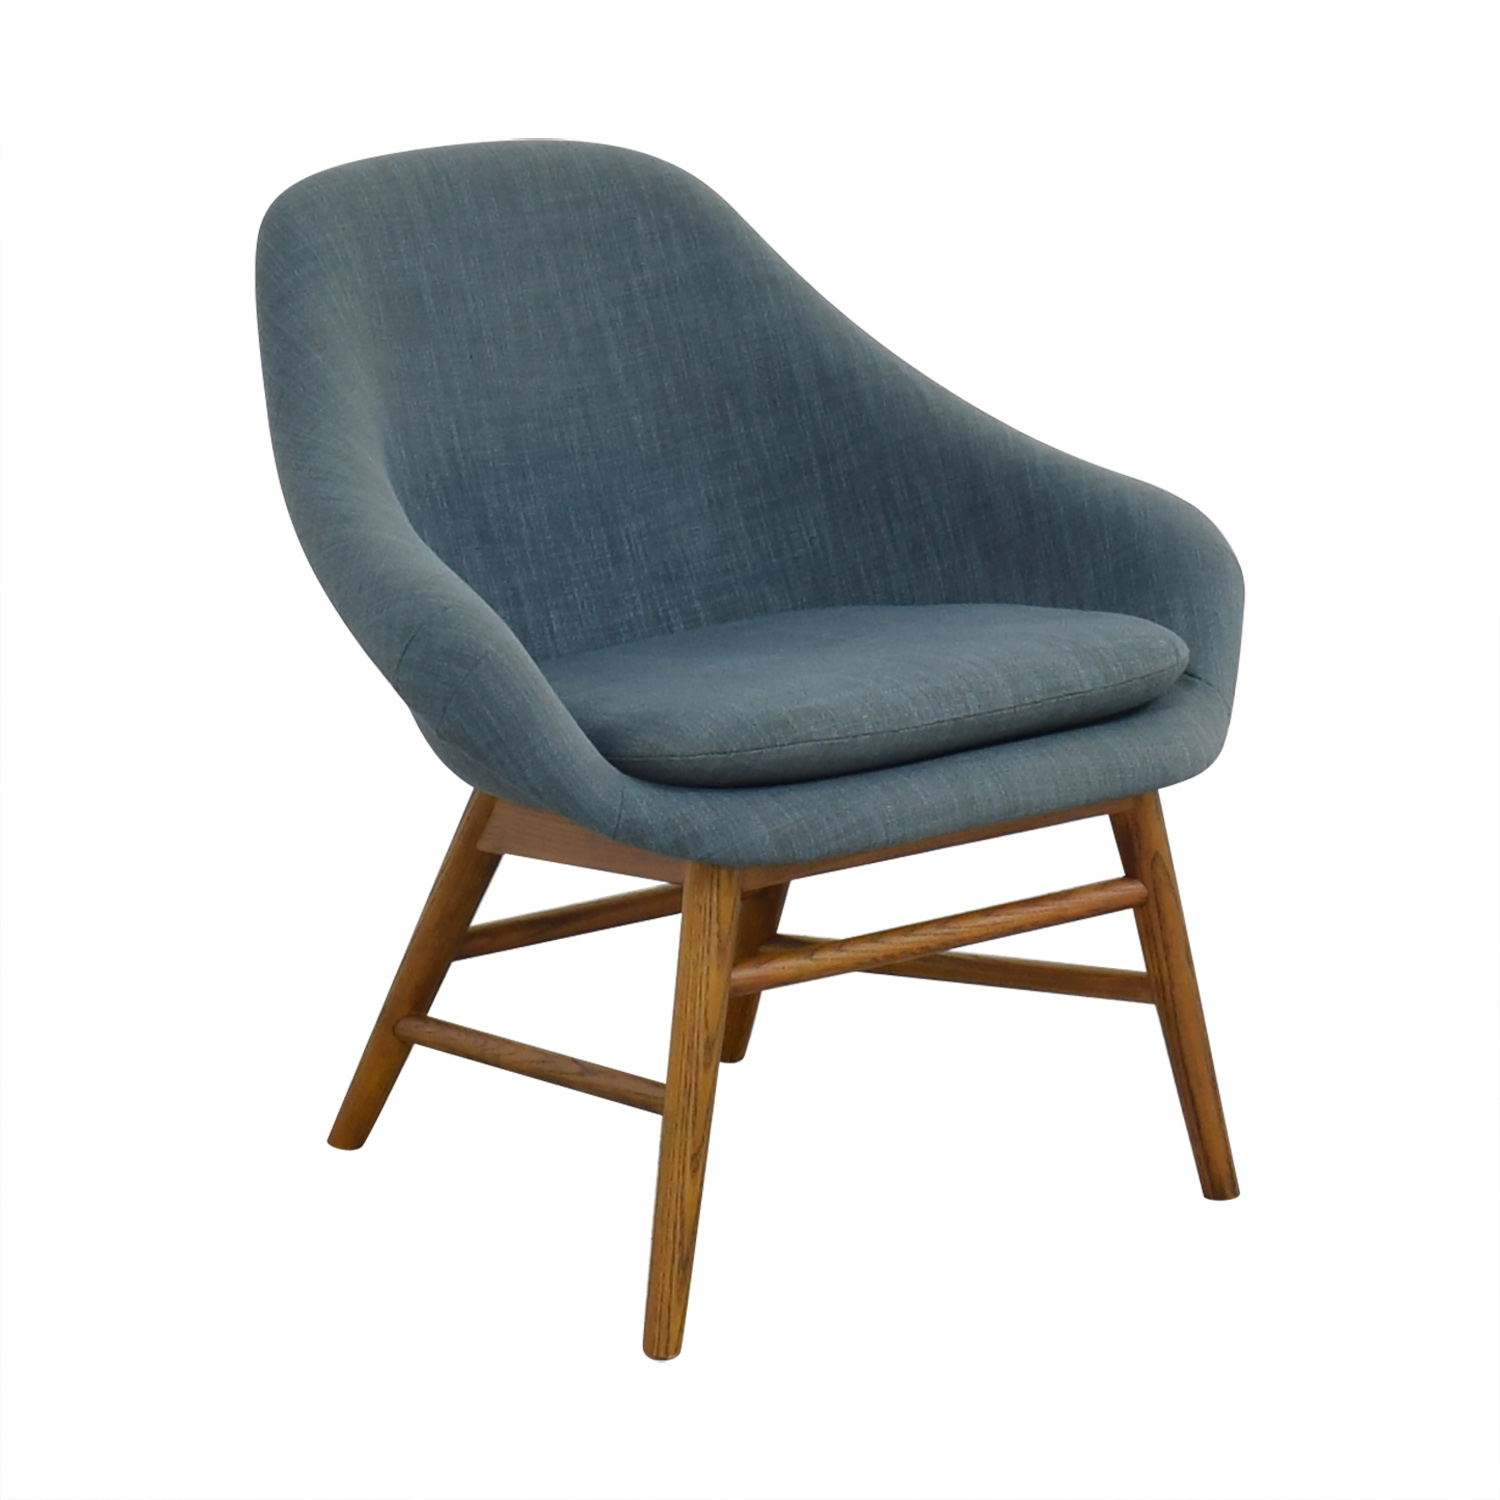 West Elm West Elm Mylo Chair Chairs